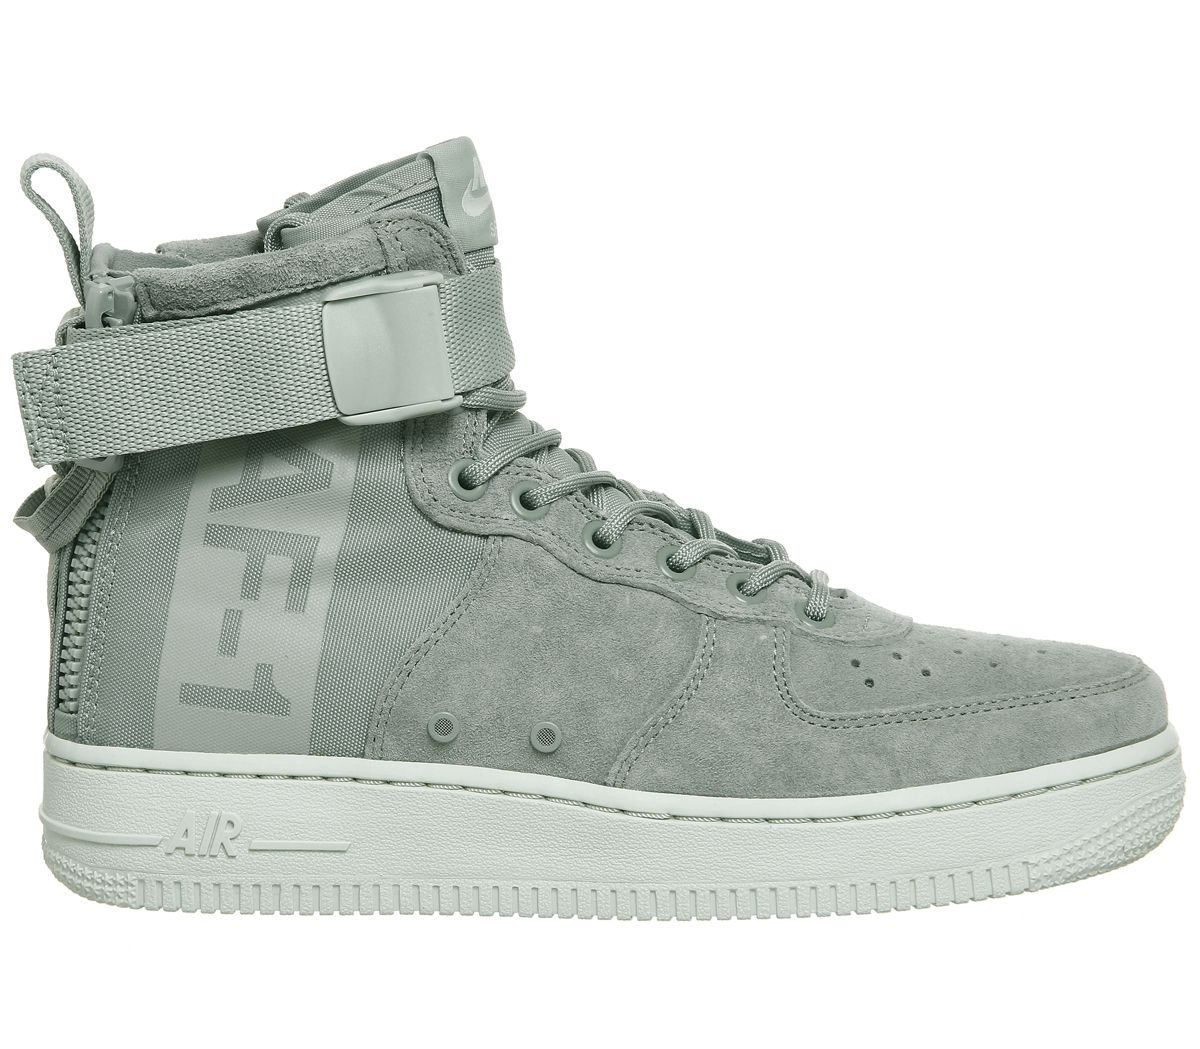 differently 8d437 bc0ce Sf Af1 Mid '17 Trainers | sneaker head in 2019 | Sneakers ...